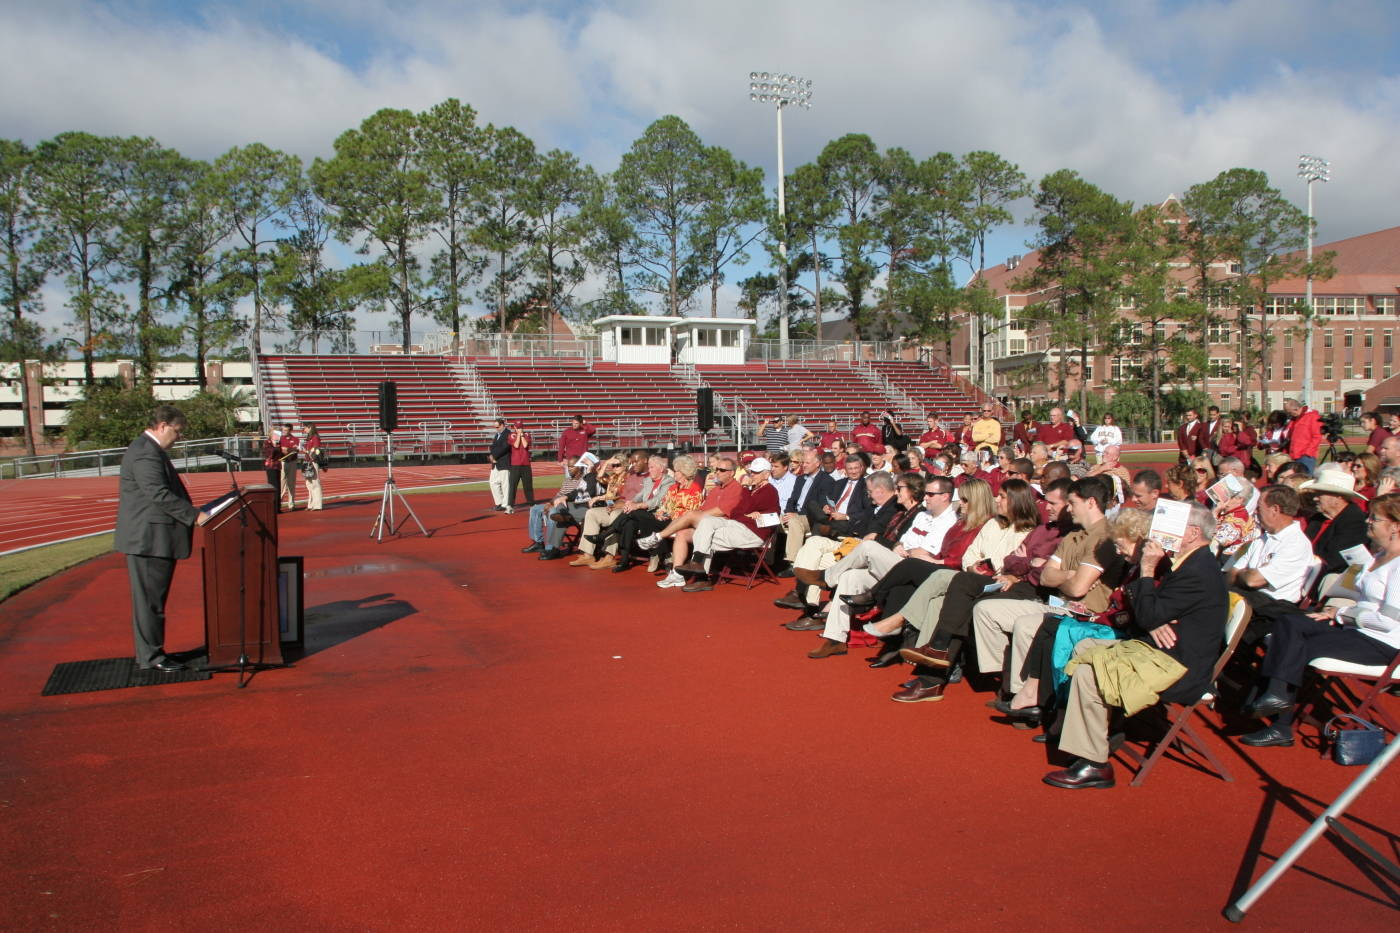 A look at the crowd on hand for the dedication.